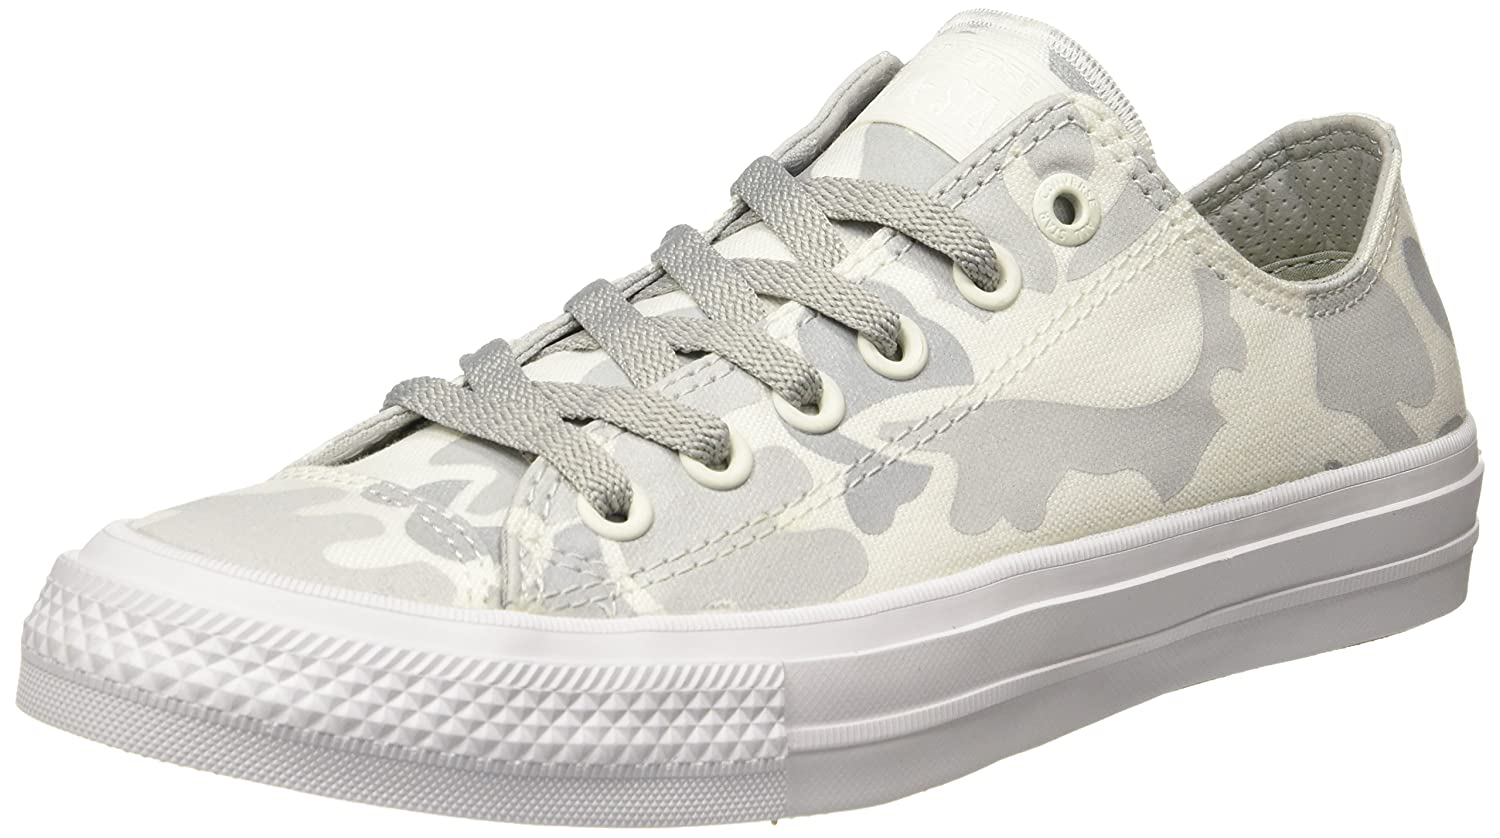 Converse Converse Converse Unisex-Erwachsene Chuck Taylor All Star Ii Reflective Camo Low-Top, 271cd1